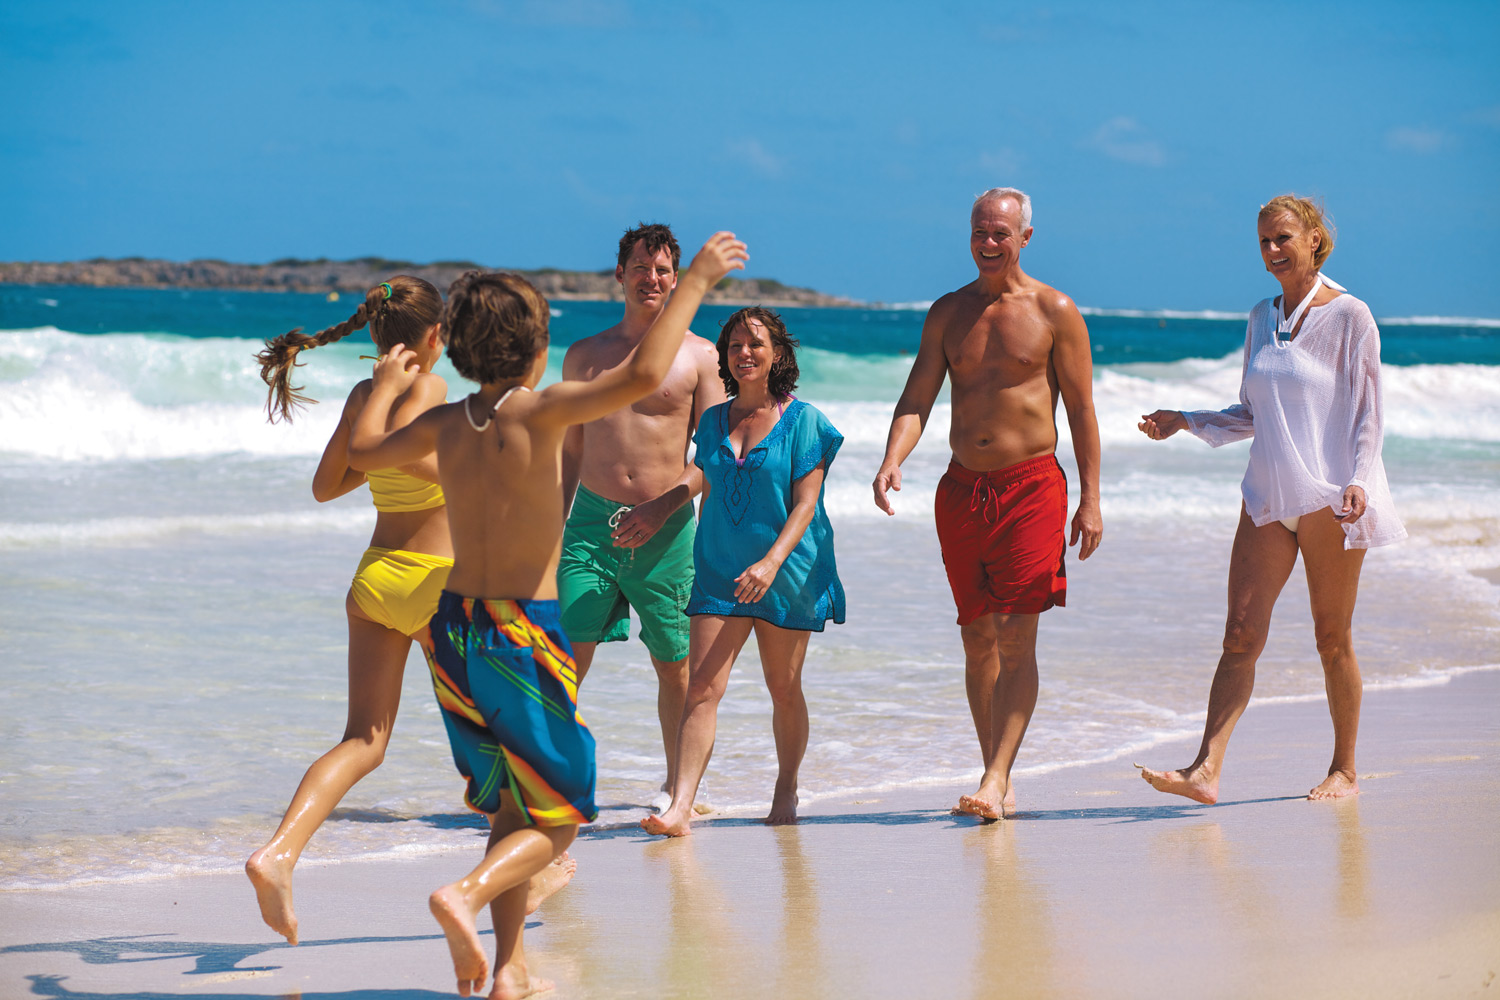 f4a84d7c496 Celebrity Cruises offers ample opportunity for family bonding.